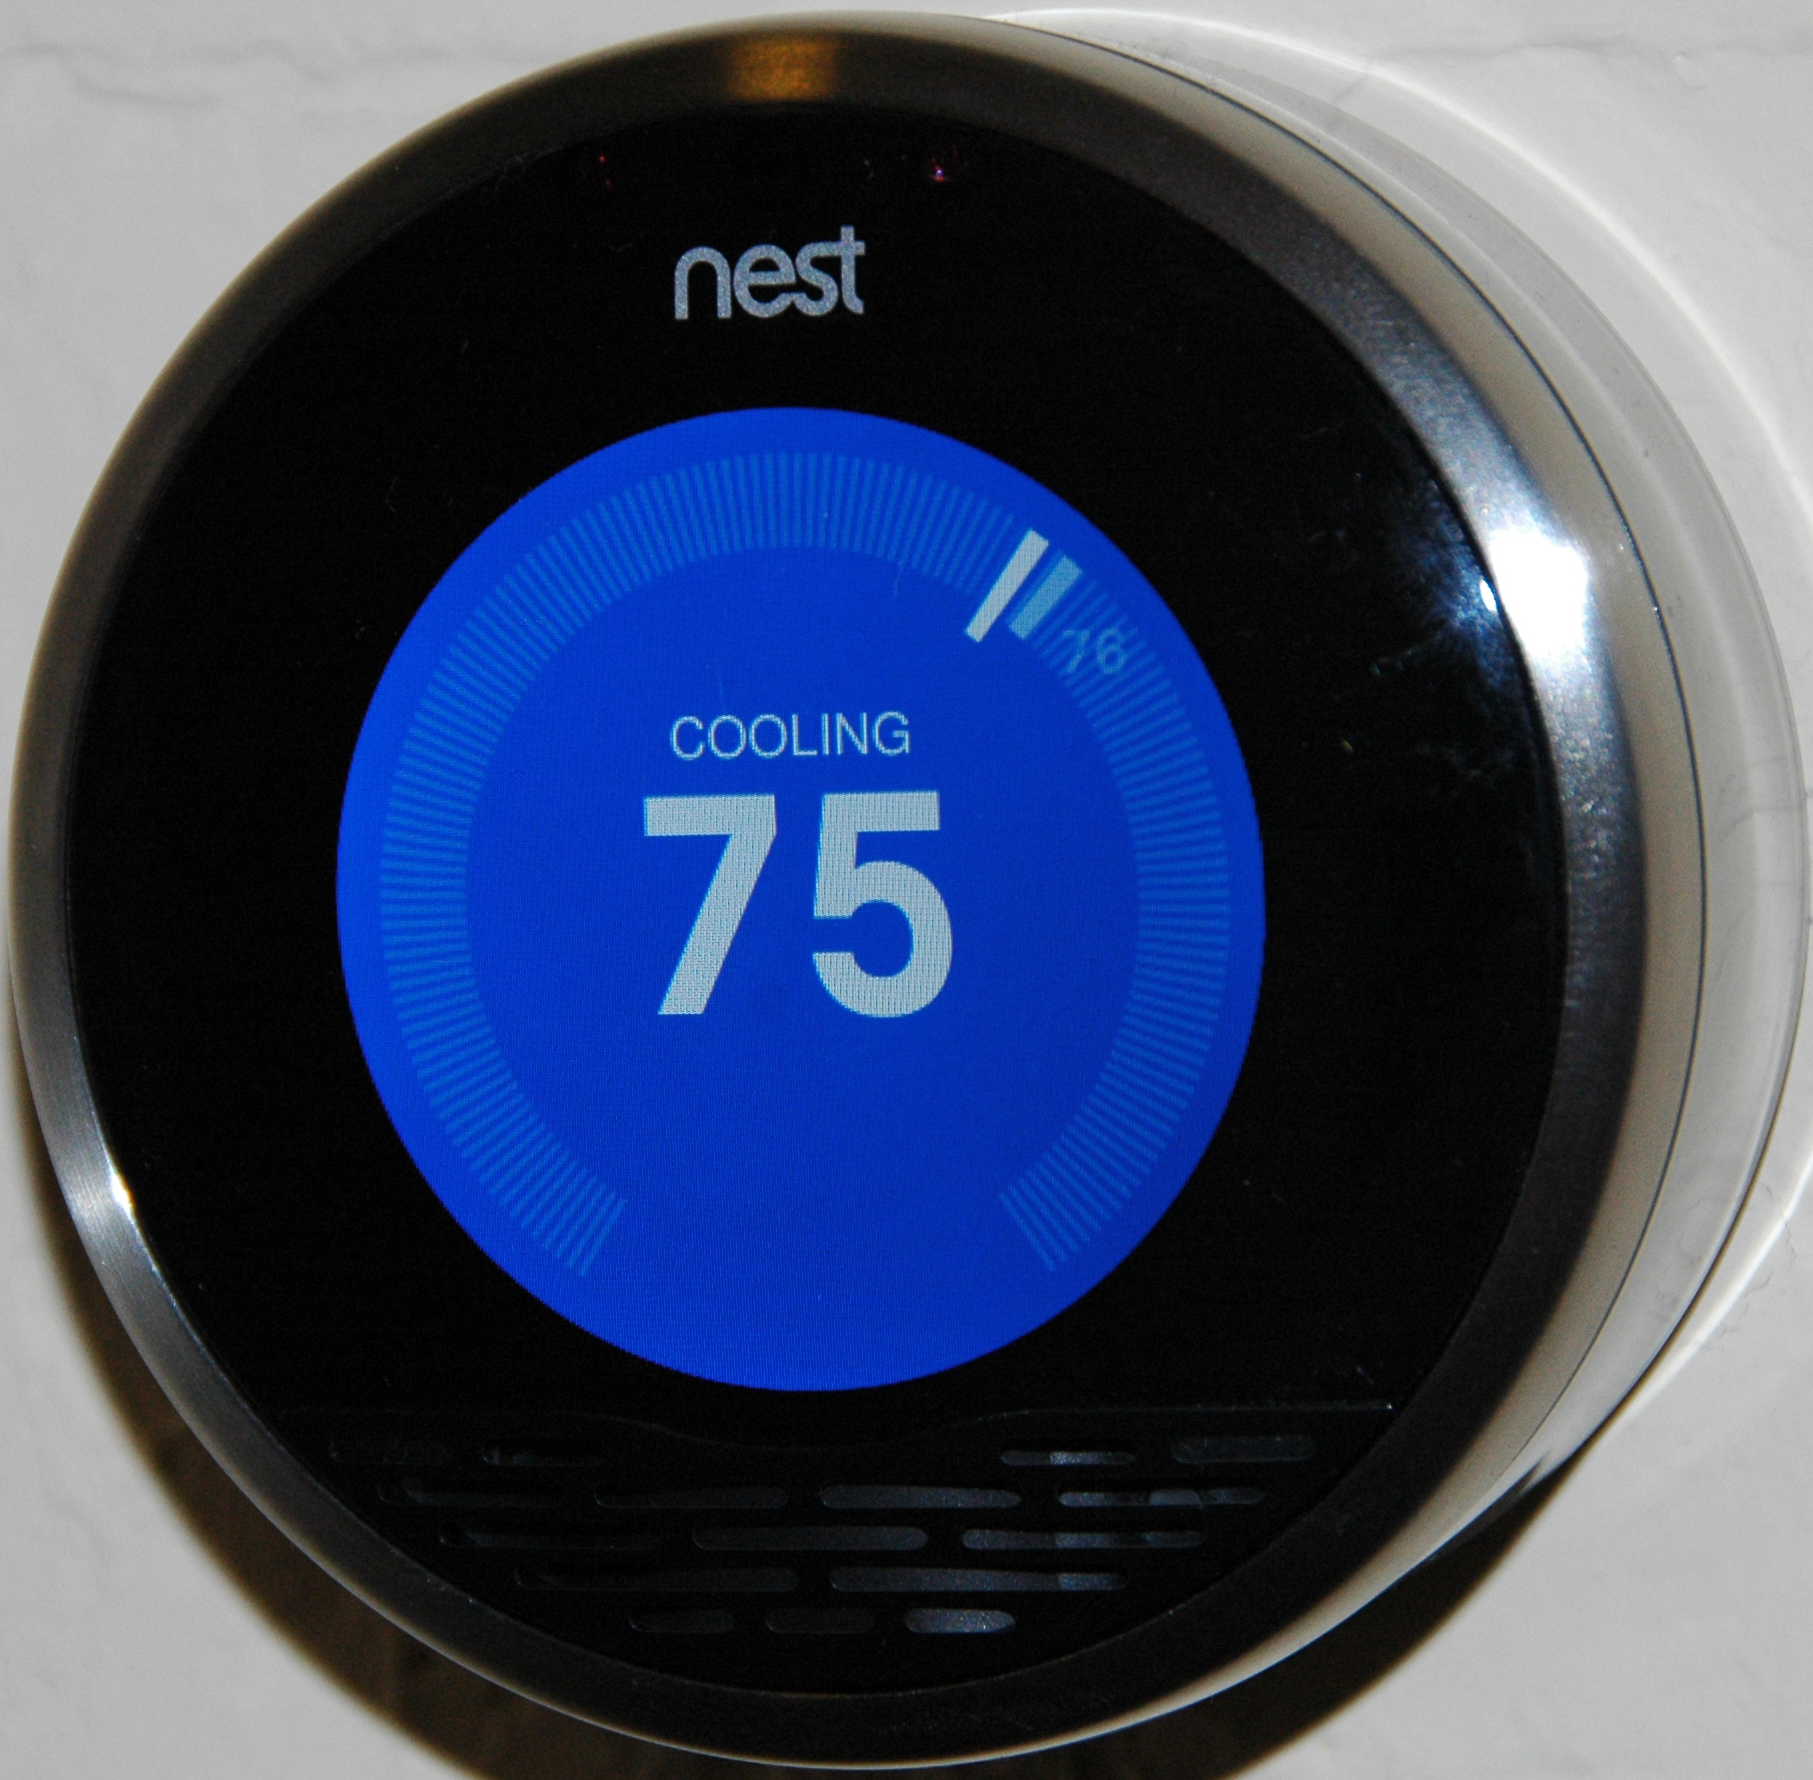 Internet of Things - Nest Remote Control Thermostat